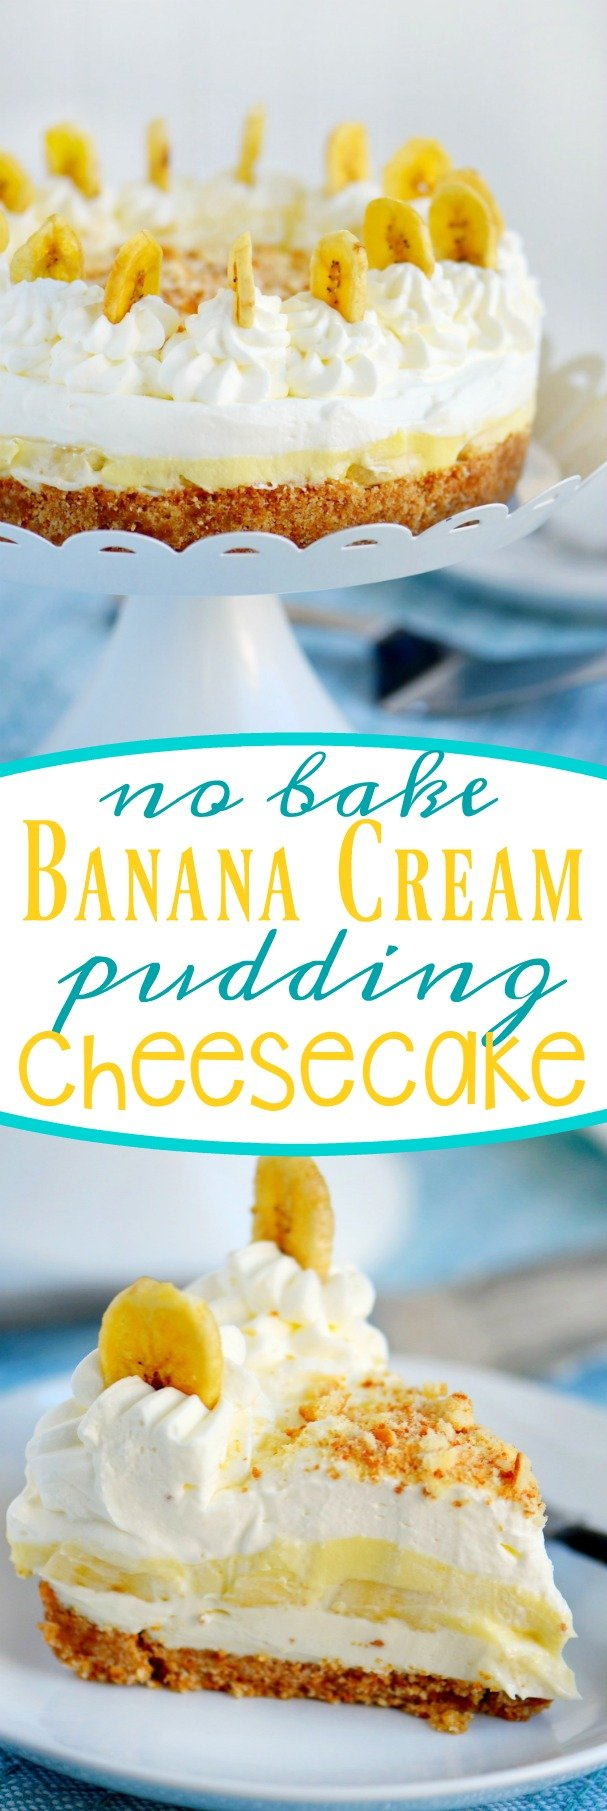 Get ready to delight friends and family with this stunning No Bake Banana Cream Pudding Cheesecake! A fabulous cookie crust, rich cheesecake, fresh bananas, creamy pudding and fresh whipped cream create an explosion of flavors and textures in your mouth. Each bite is better than the last!